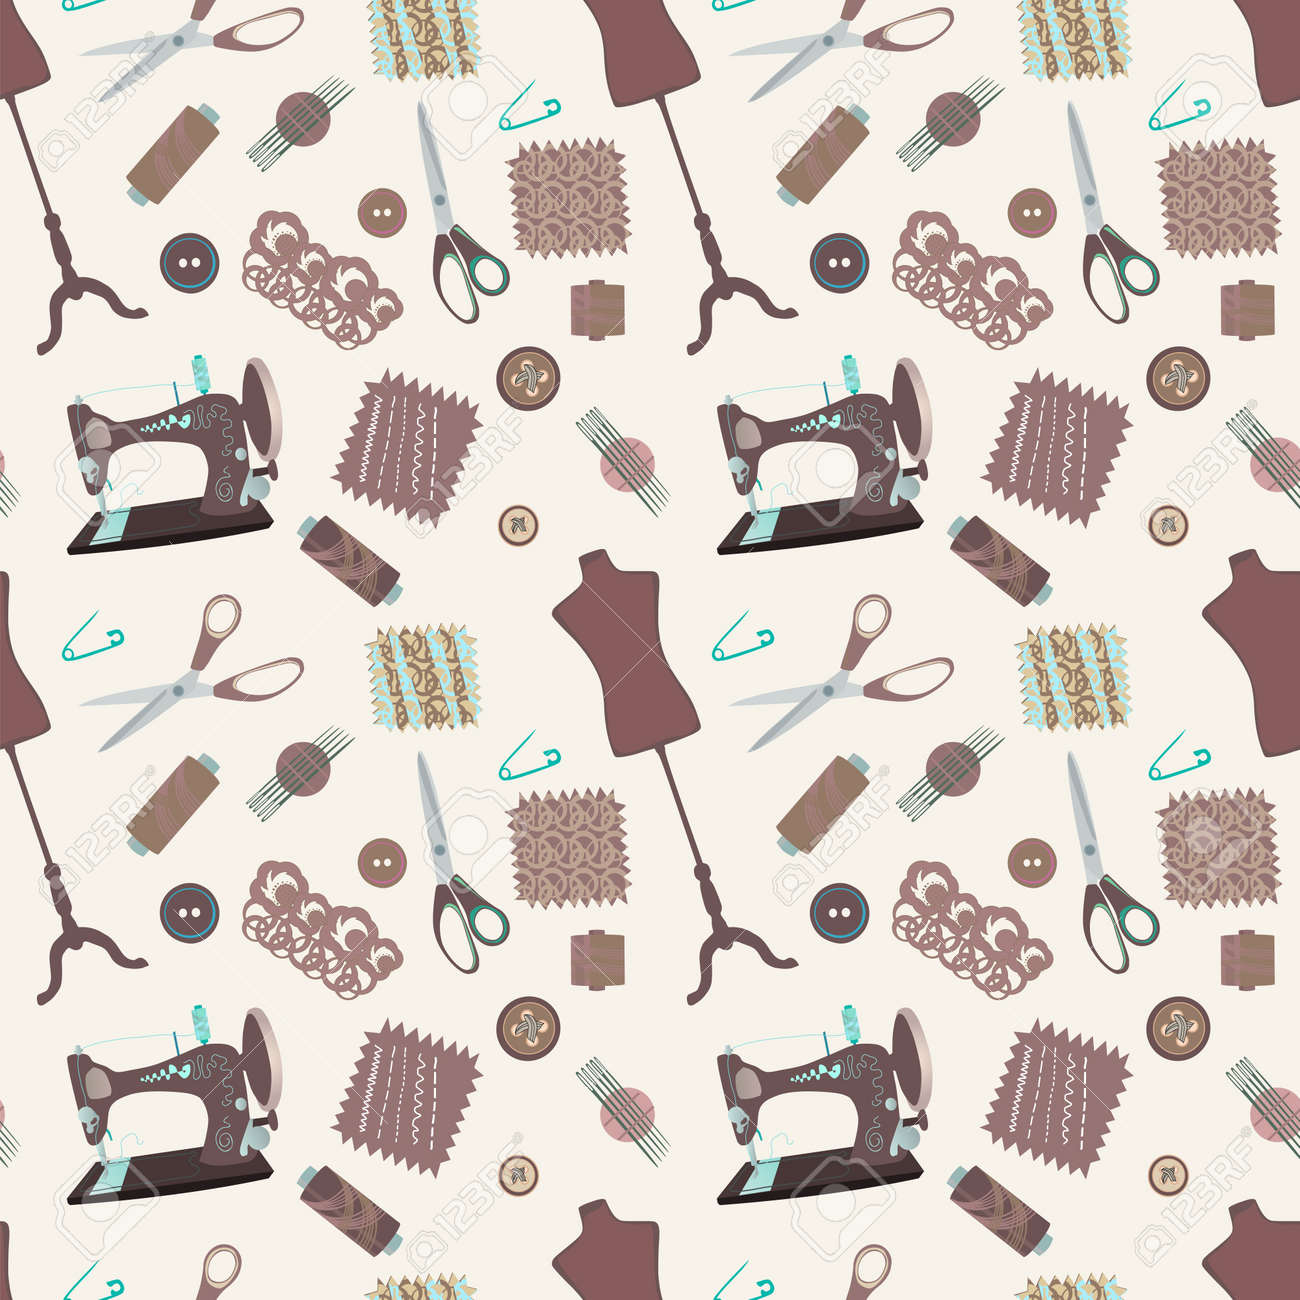 Retro Seamless Pattern With Sewing Accessories - Sewing Tailor ...